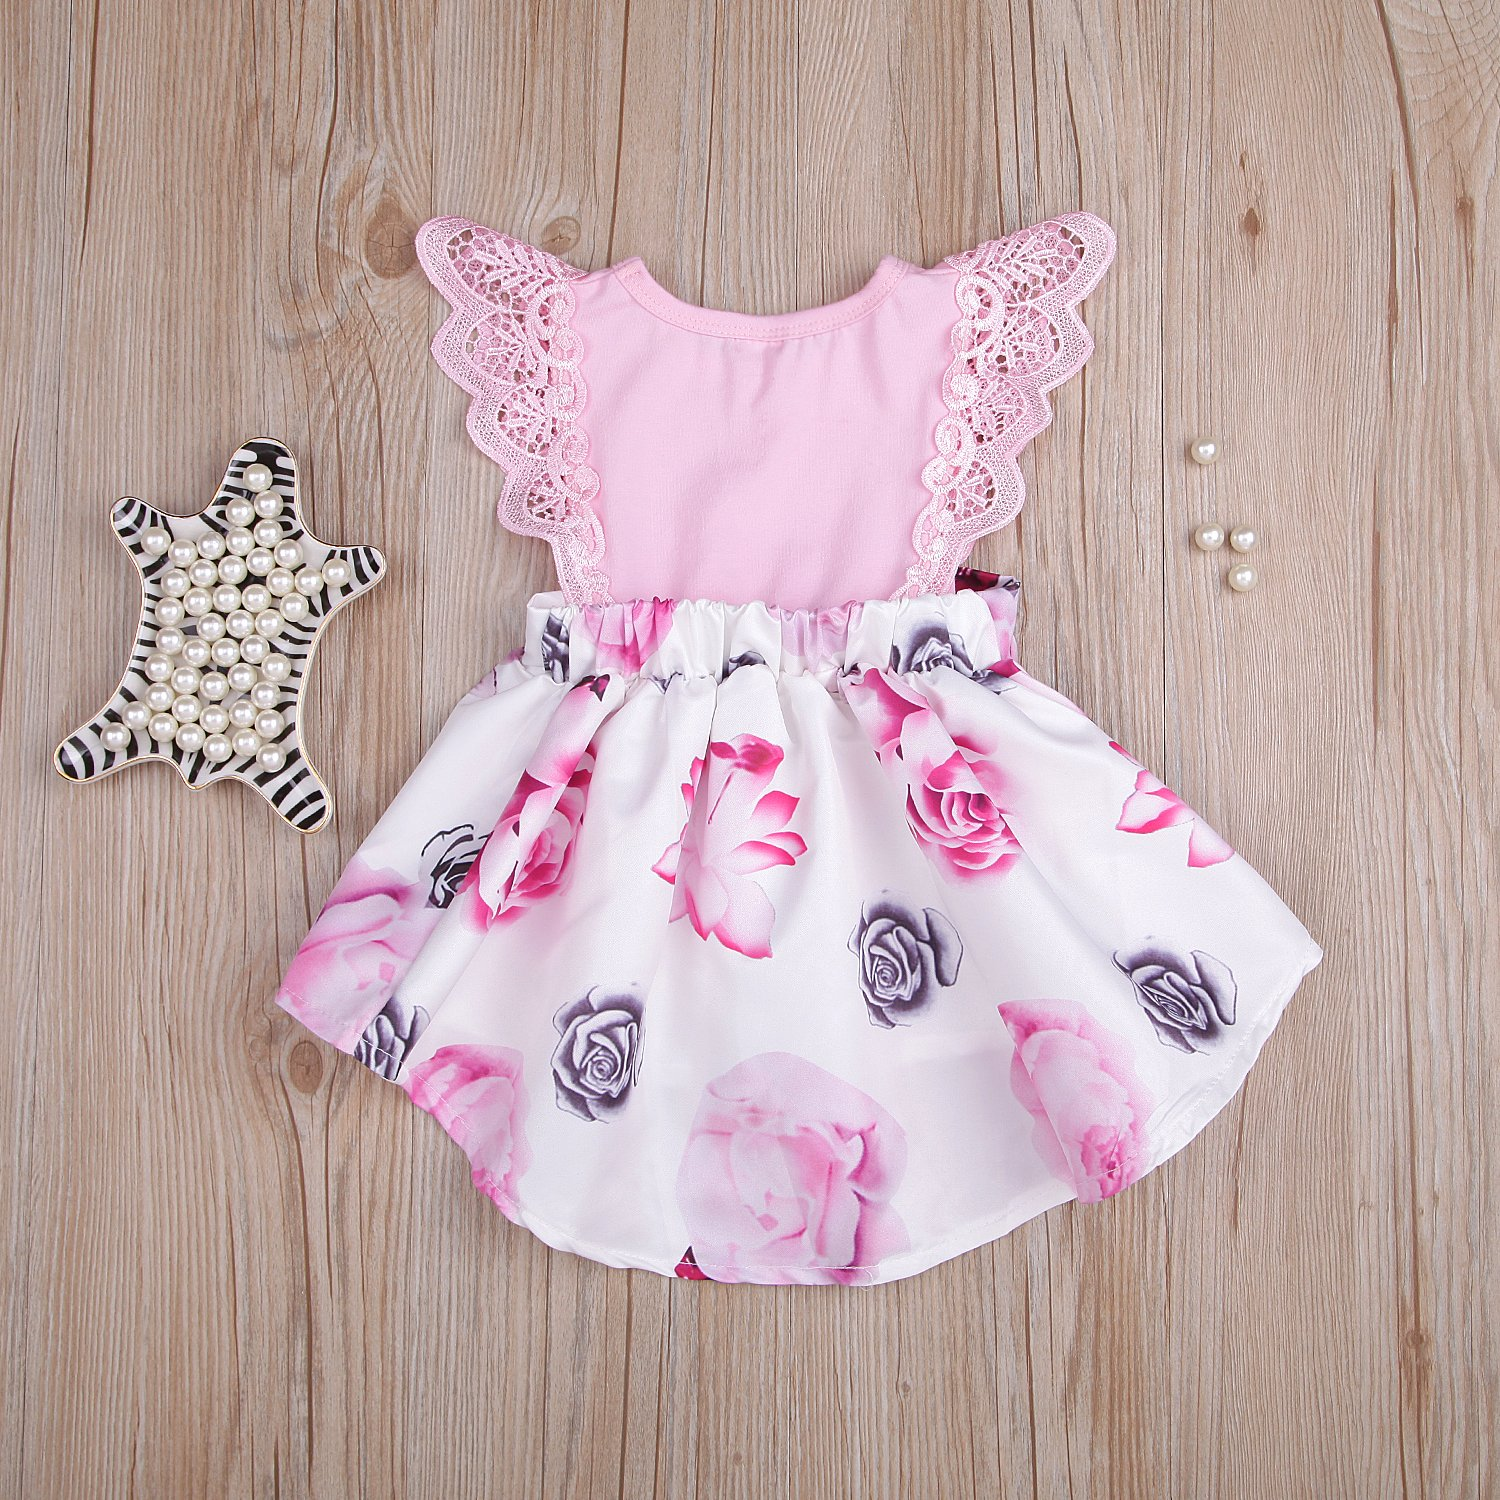 Little Sister Floral Clothing Lace Ruffle Sleeve Dress Outfit Princess Sundress Baby Girl Dress